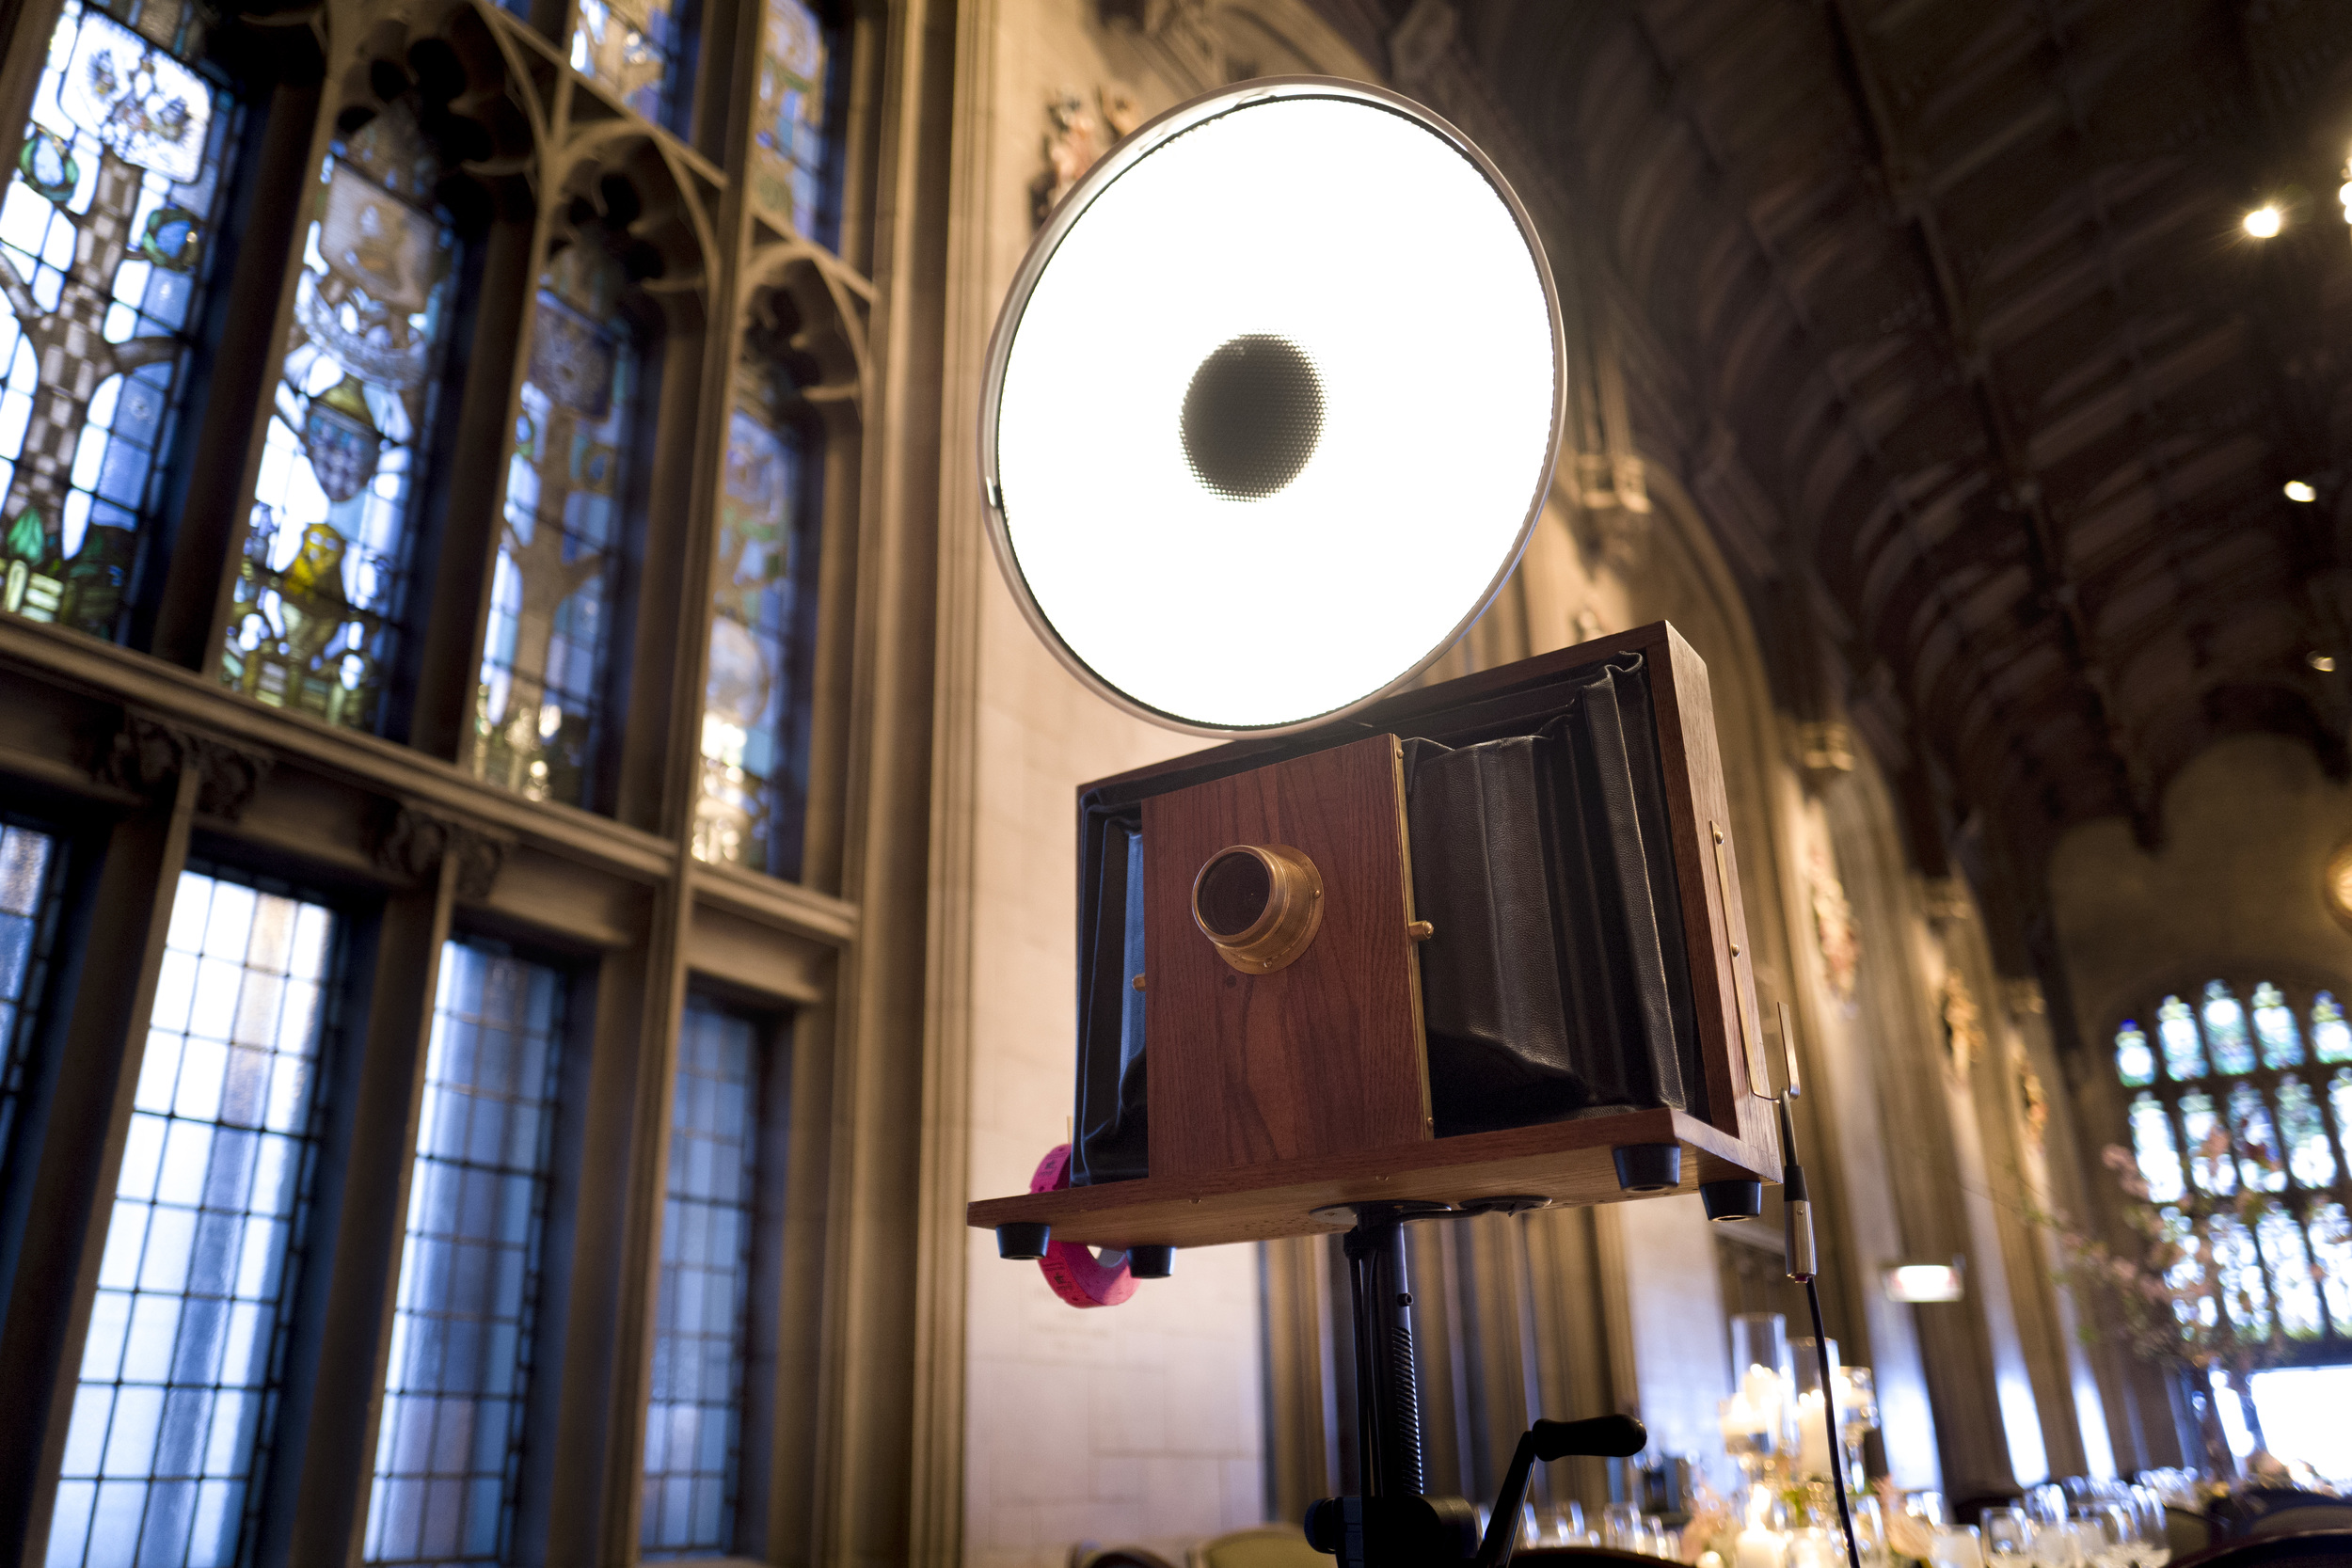 A Fotio photo booth setup in Cathedral Hall at the University of Chicago wedding.